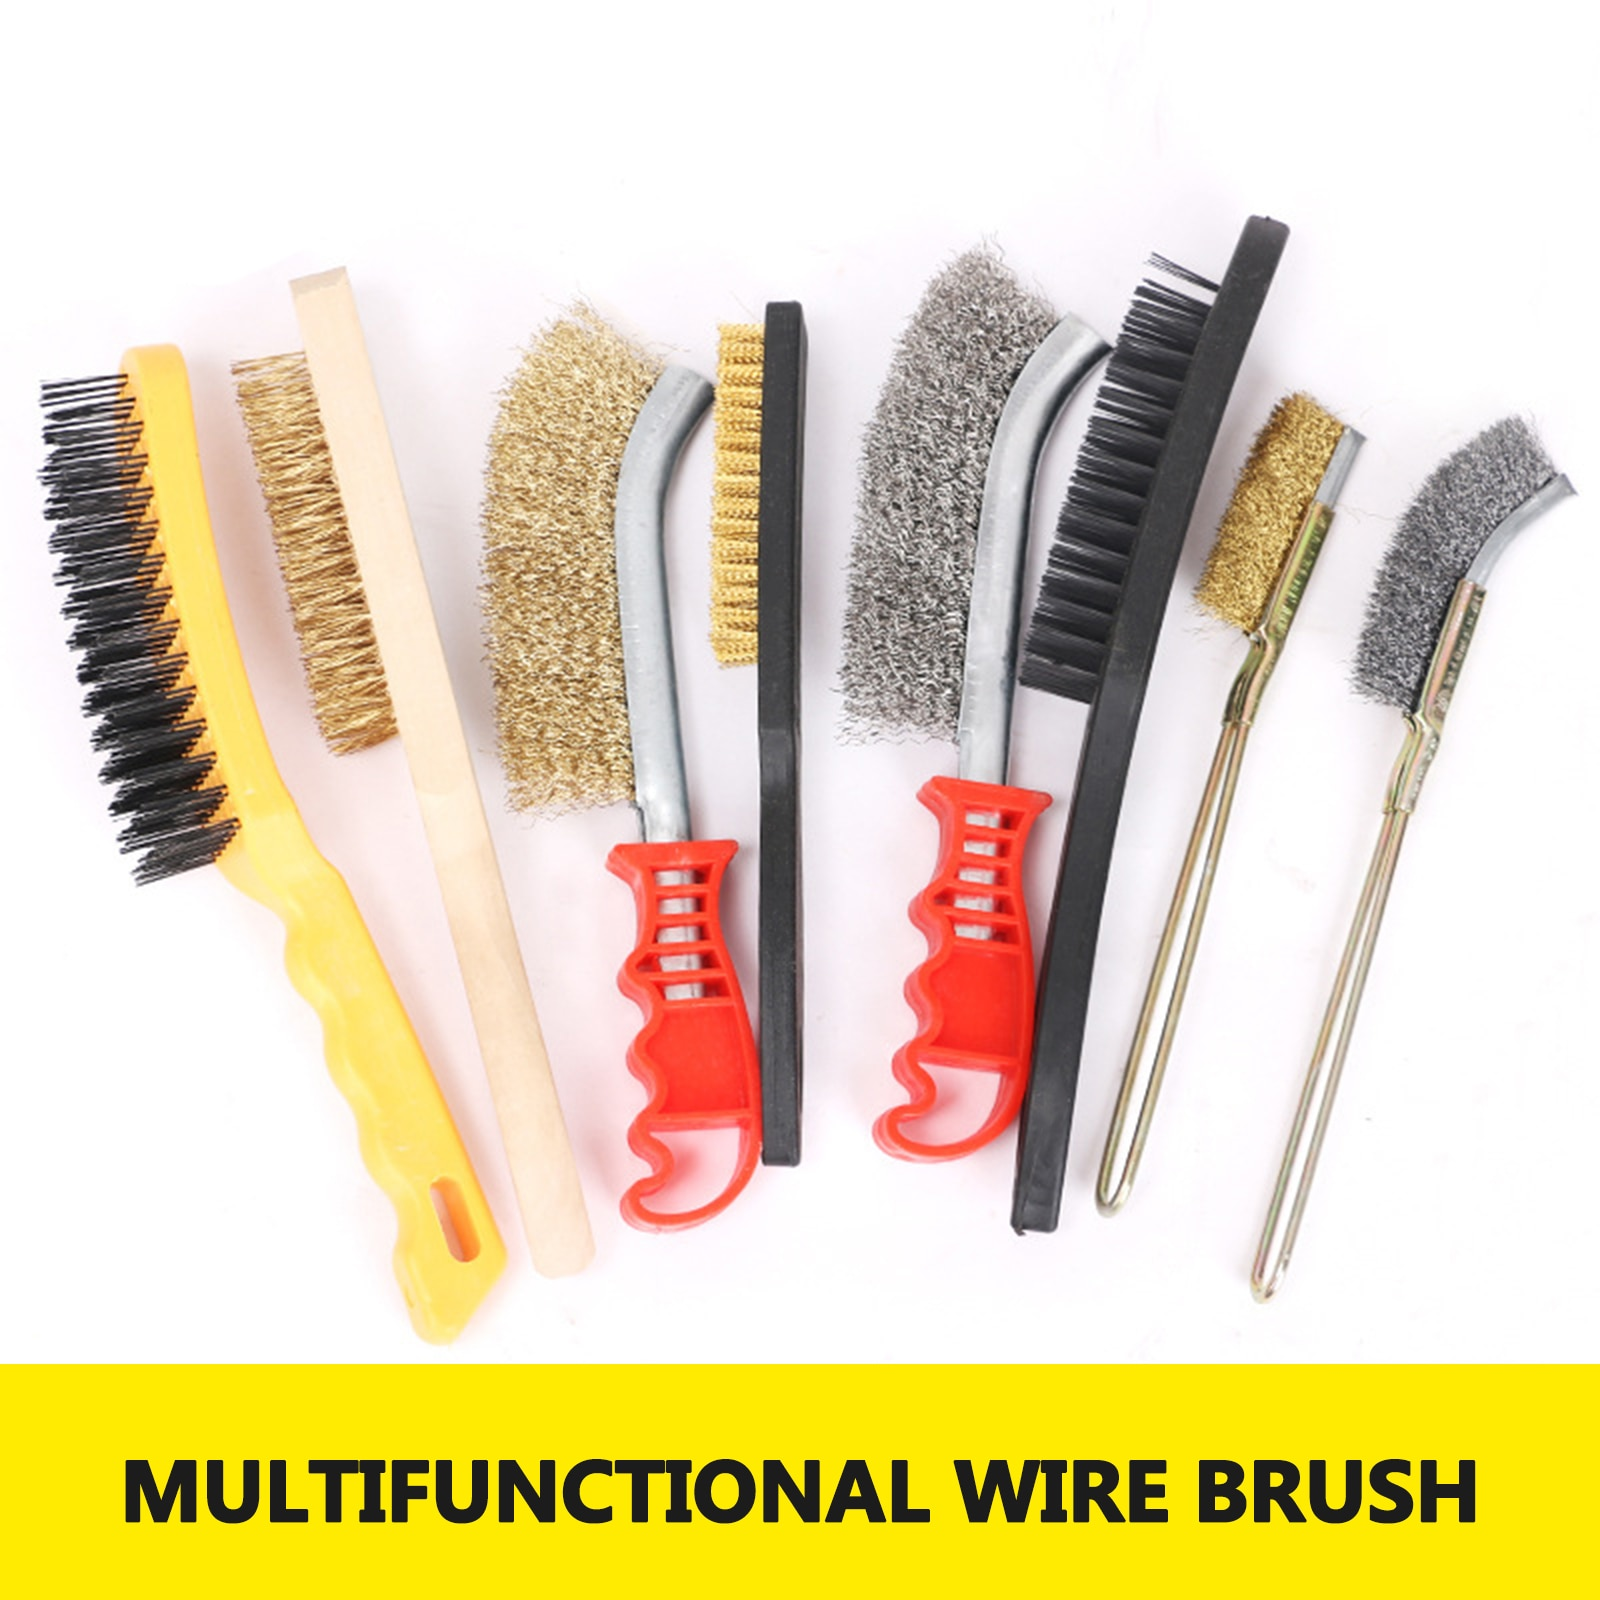 wire bowl type machinery brush cutter durable nylon wire weeding brush wire trimmer head brush tools Steel Wire Brush Barbecue Cleaning Stainless Steel Wire Iron Brush Small Steel Copper Brush Derusting Brushsteel Wire Brush